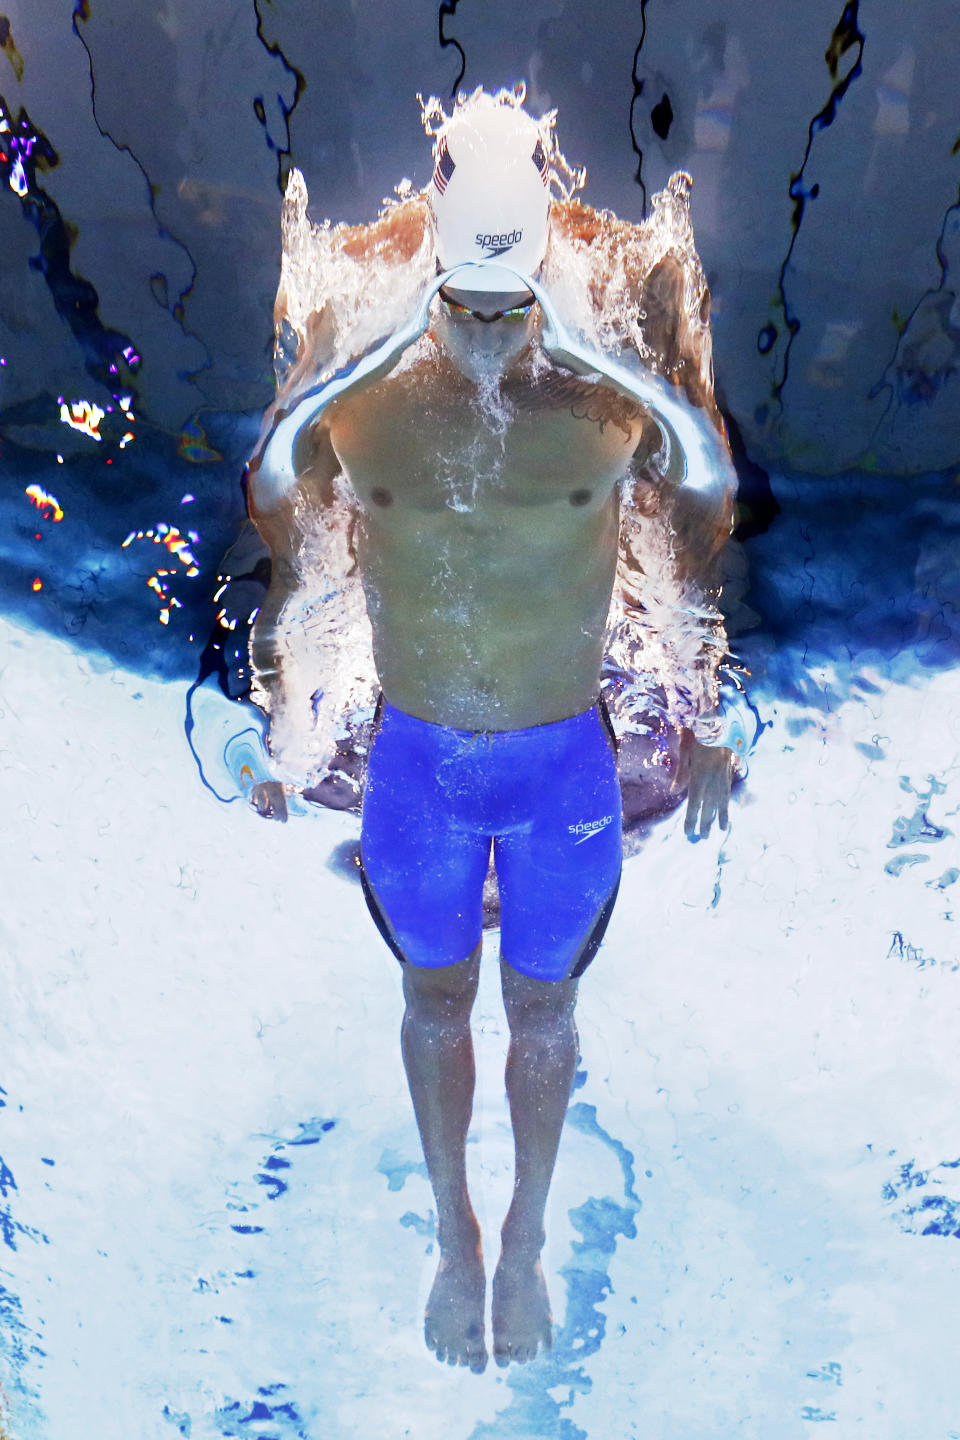 <p>TOKYO, JAPAN - JULY 29: Caeleb Dressel of Team United States competes in the Men's 100m Butterfly heats on day six of the Tokyo 2020 Olympic Games at Tokyo Aquatics Centre on July 29, 2021 in Tokyo, Japan. (Photo by Al Bello/Getty Images)</p>